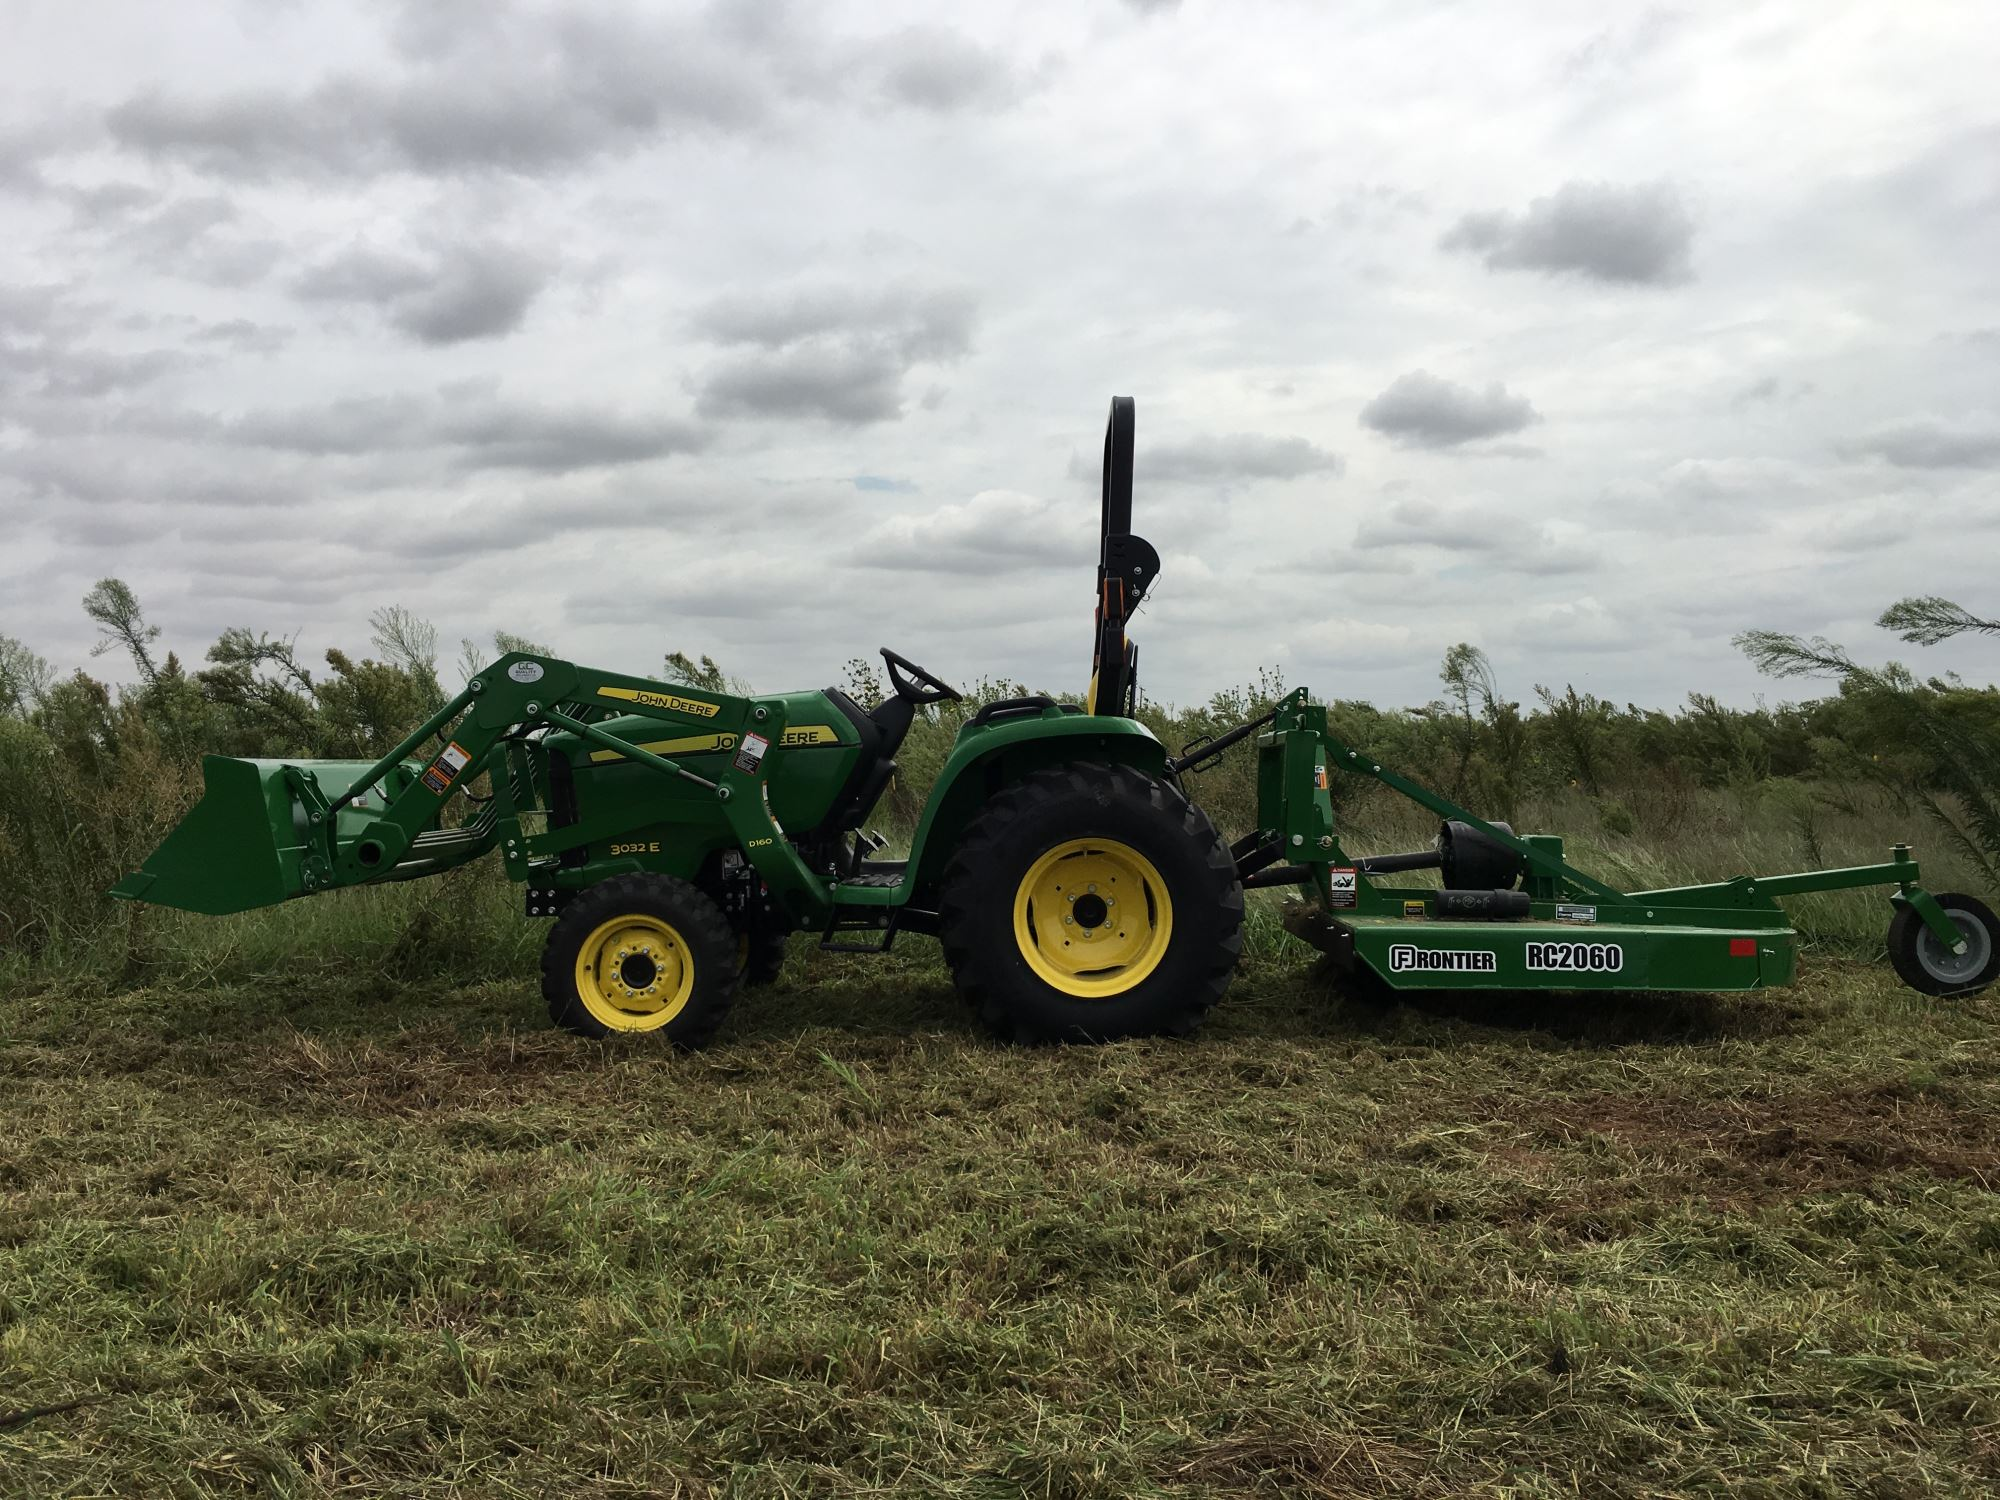 New 3032E Tractor & Loader: 3 Series Compact Utility Tractors